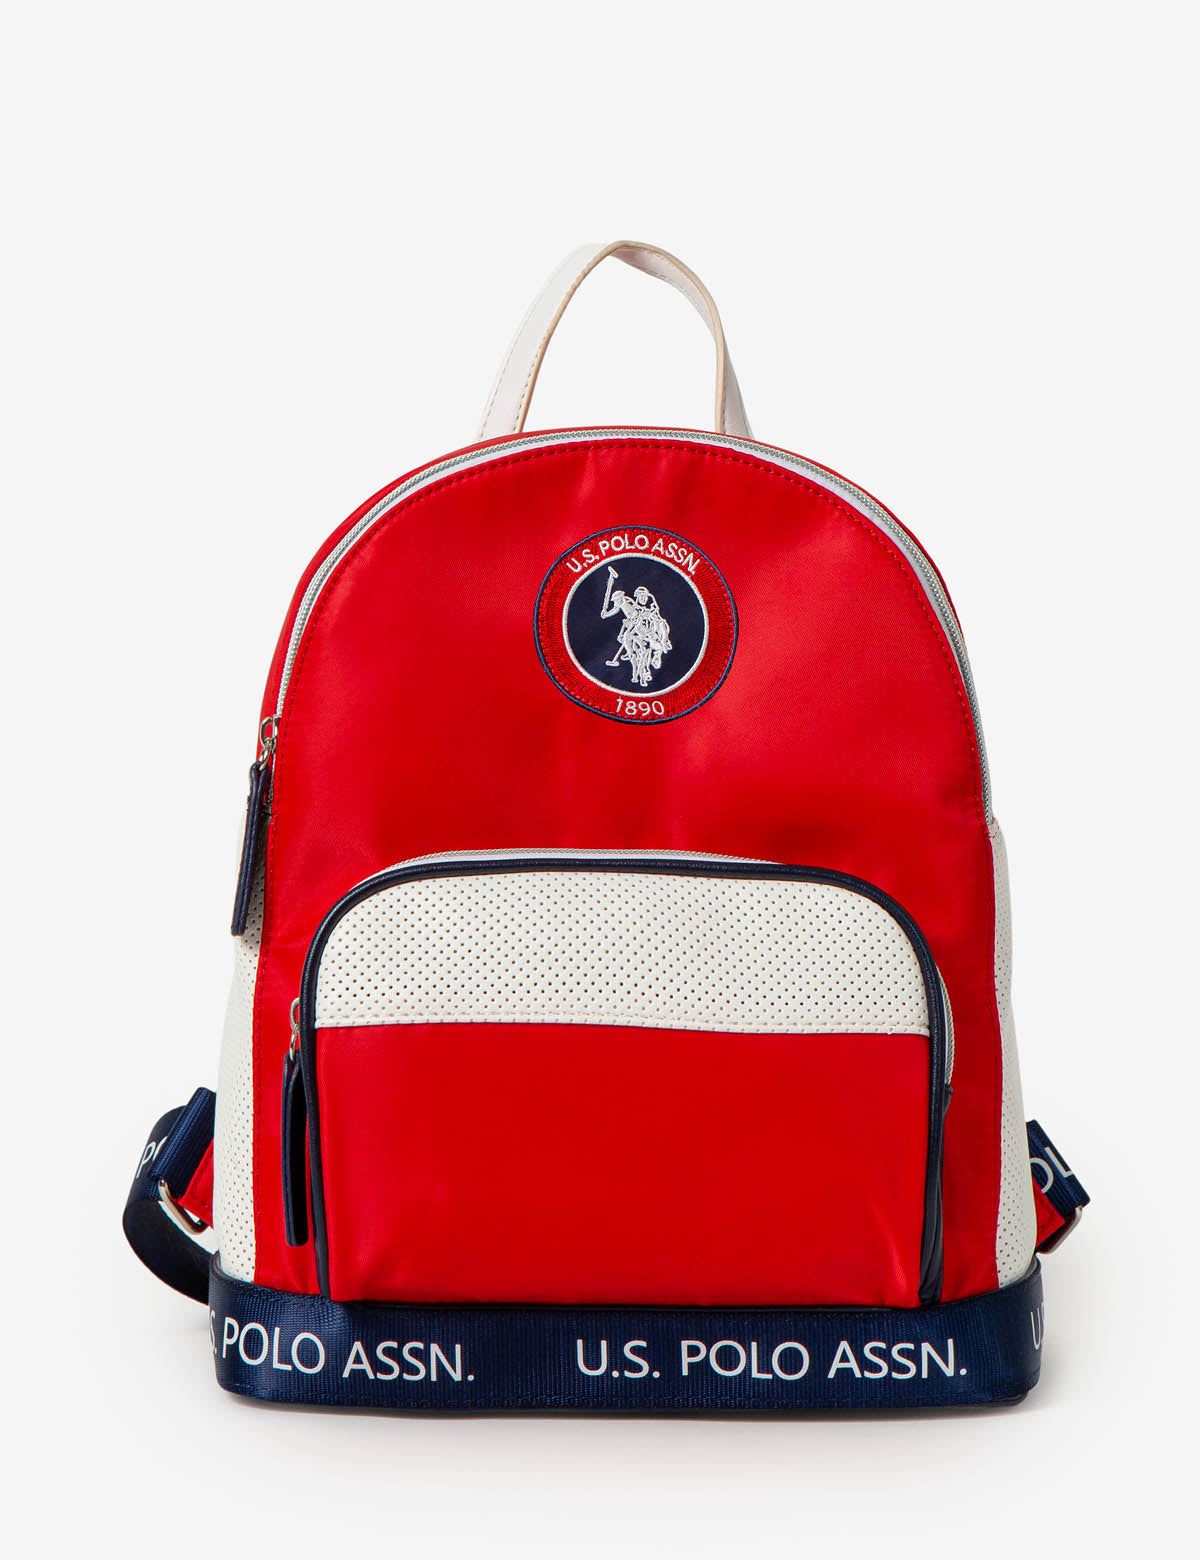 NYLON LOGO BACKPACK - U.S. Polo Assn.